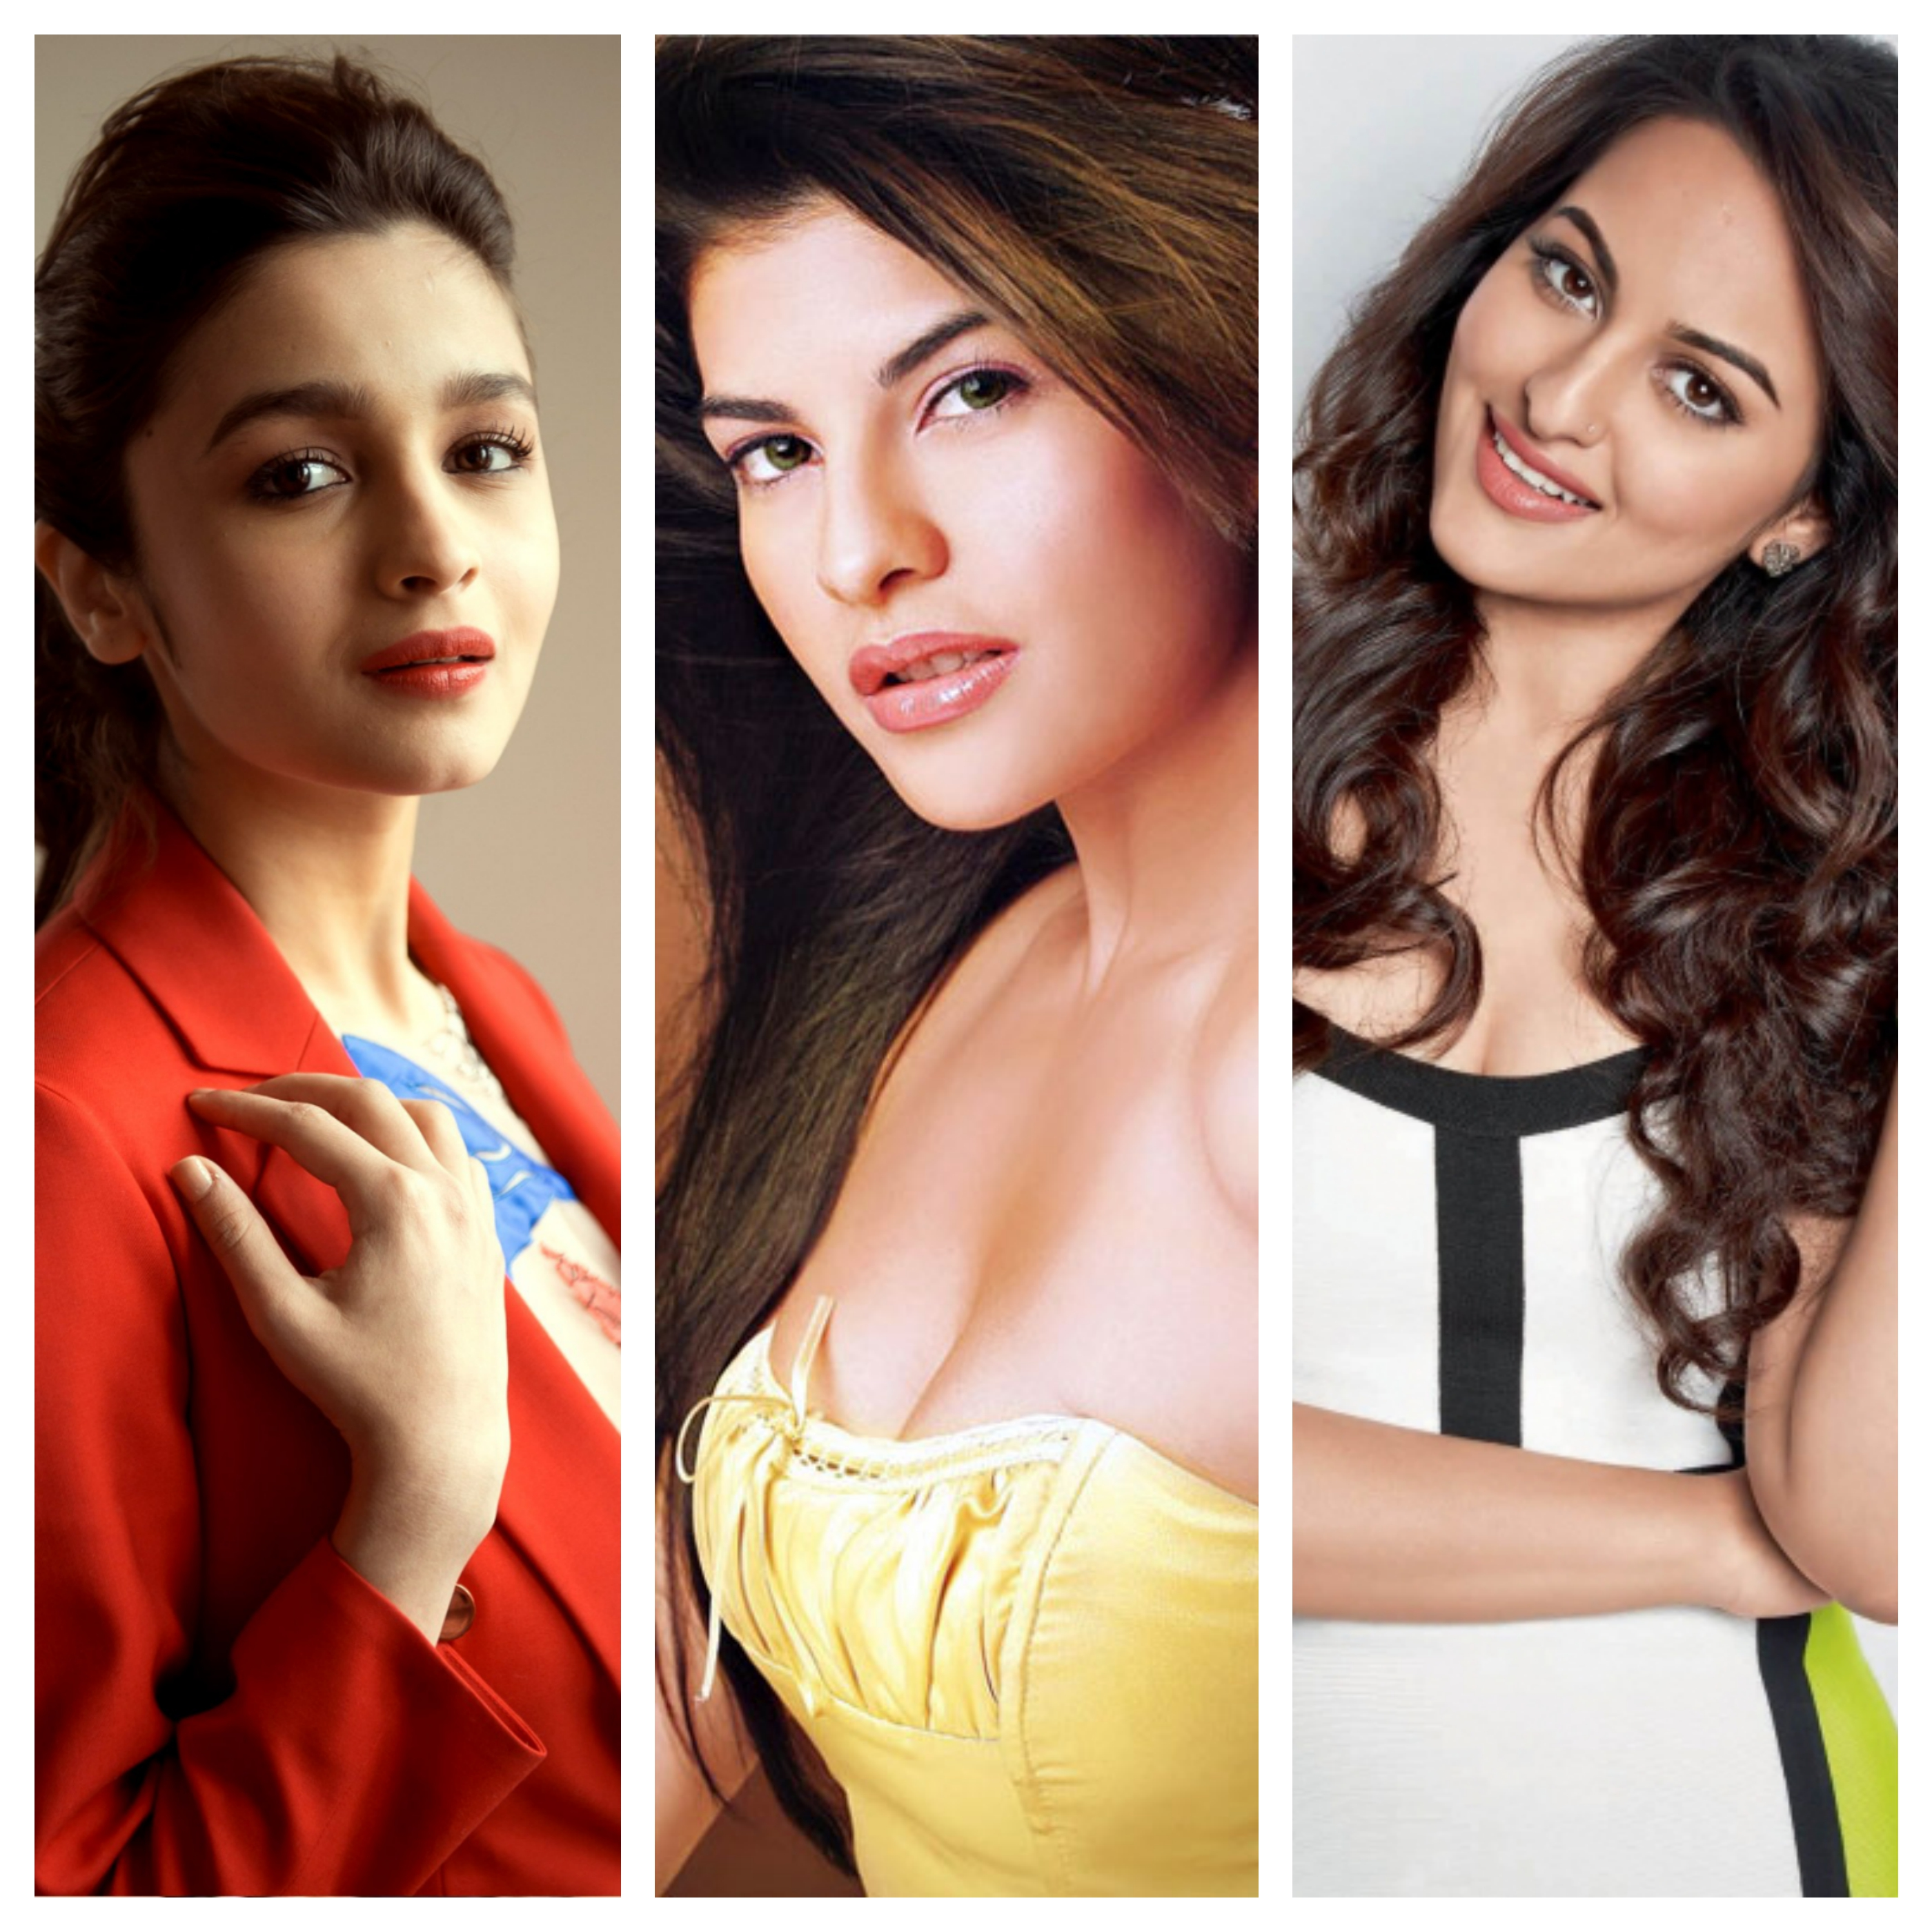 Watch Alia Bhatt Sonakshi Sinha Jacqueline in Dubsmash Video